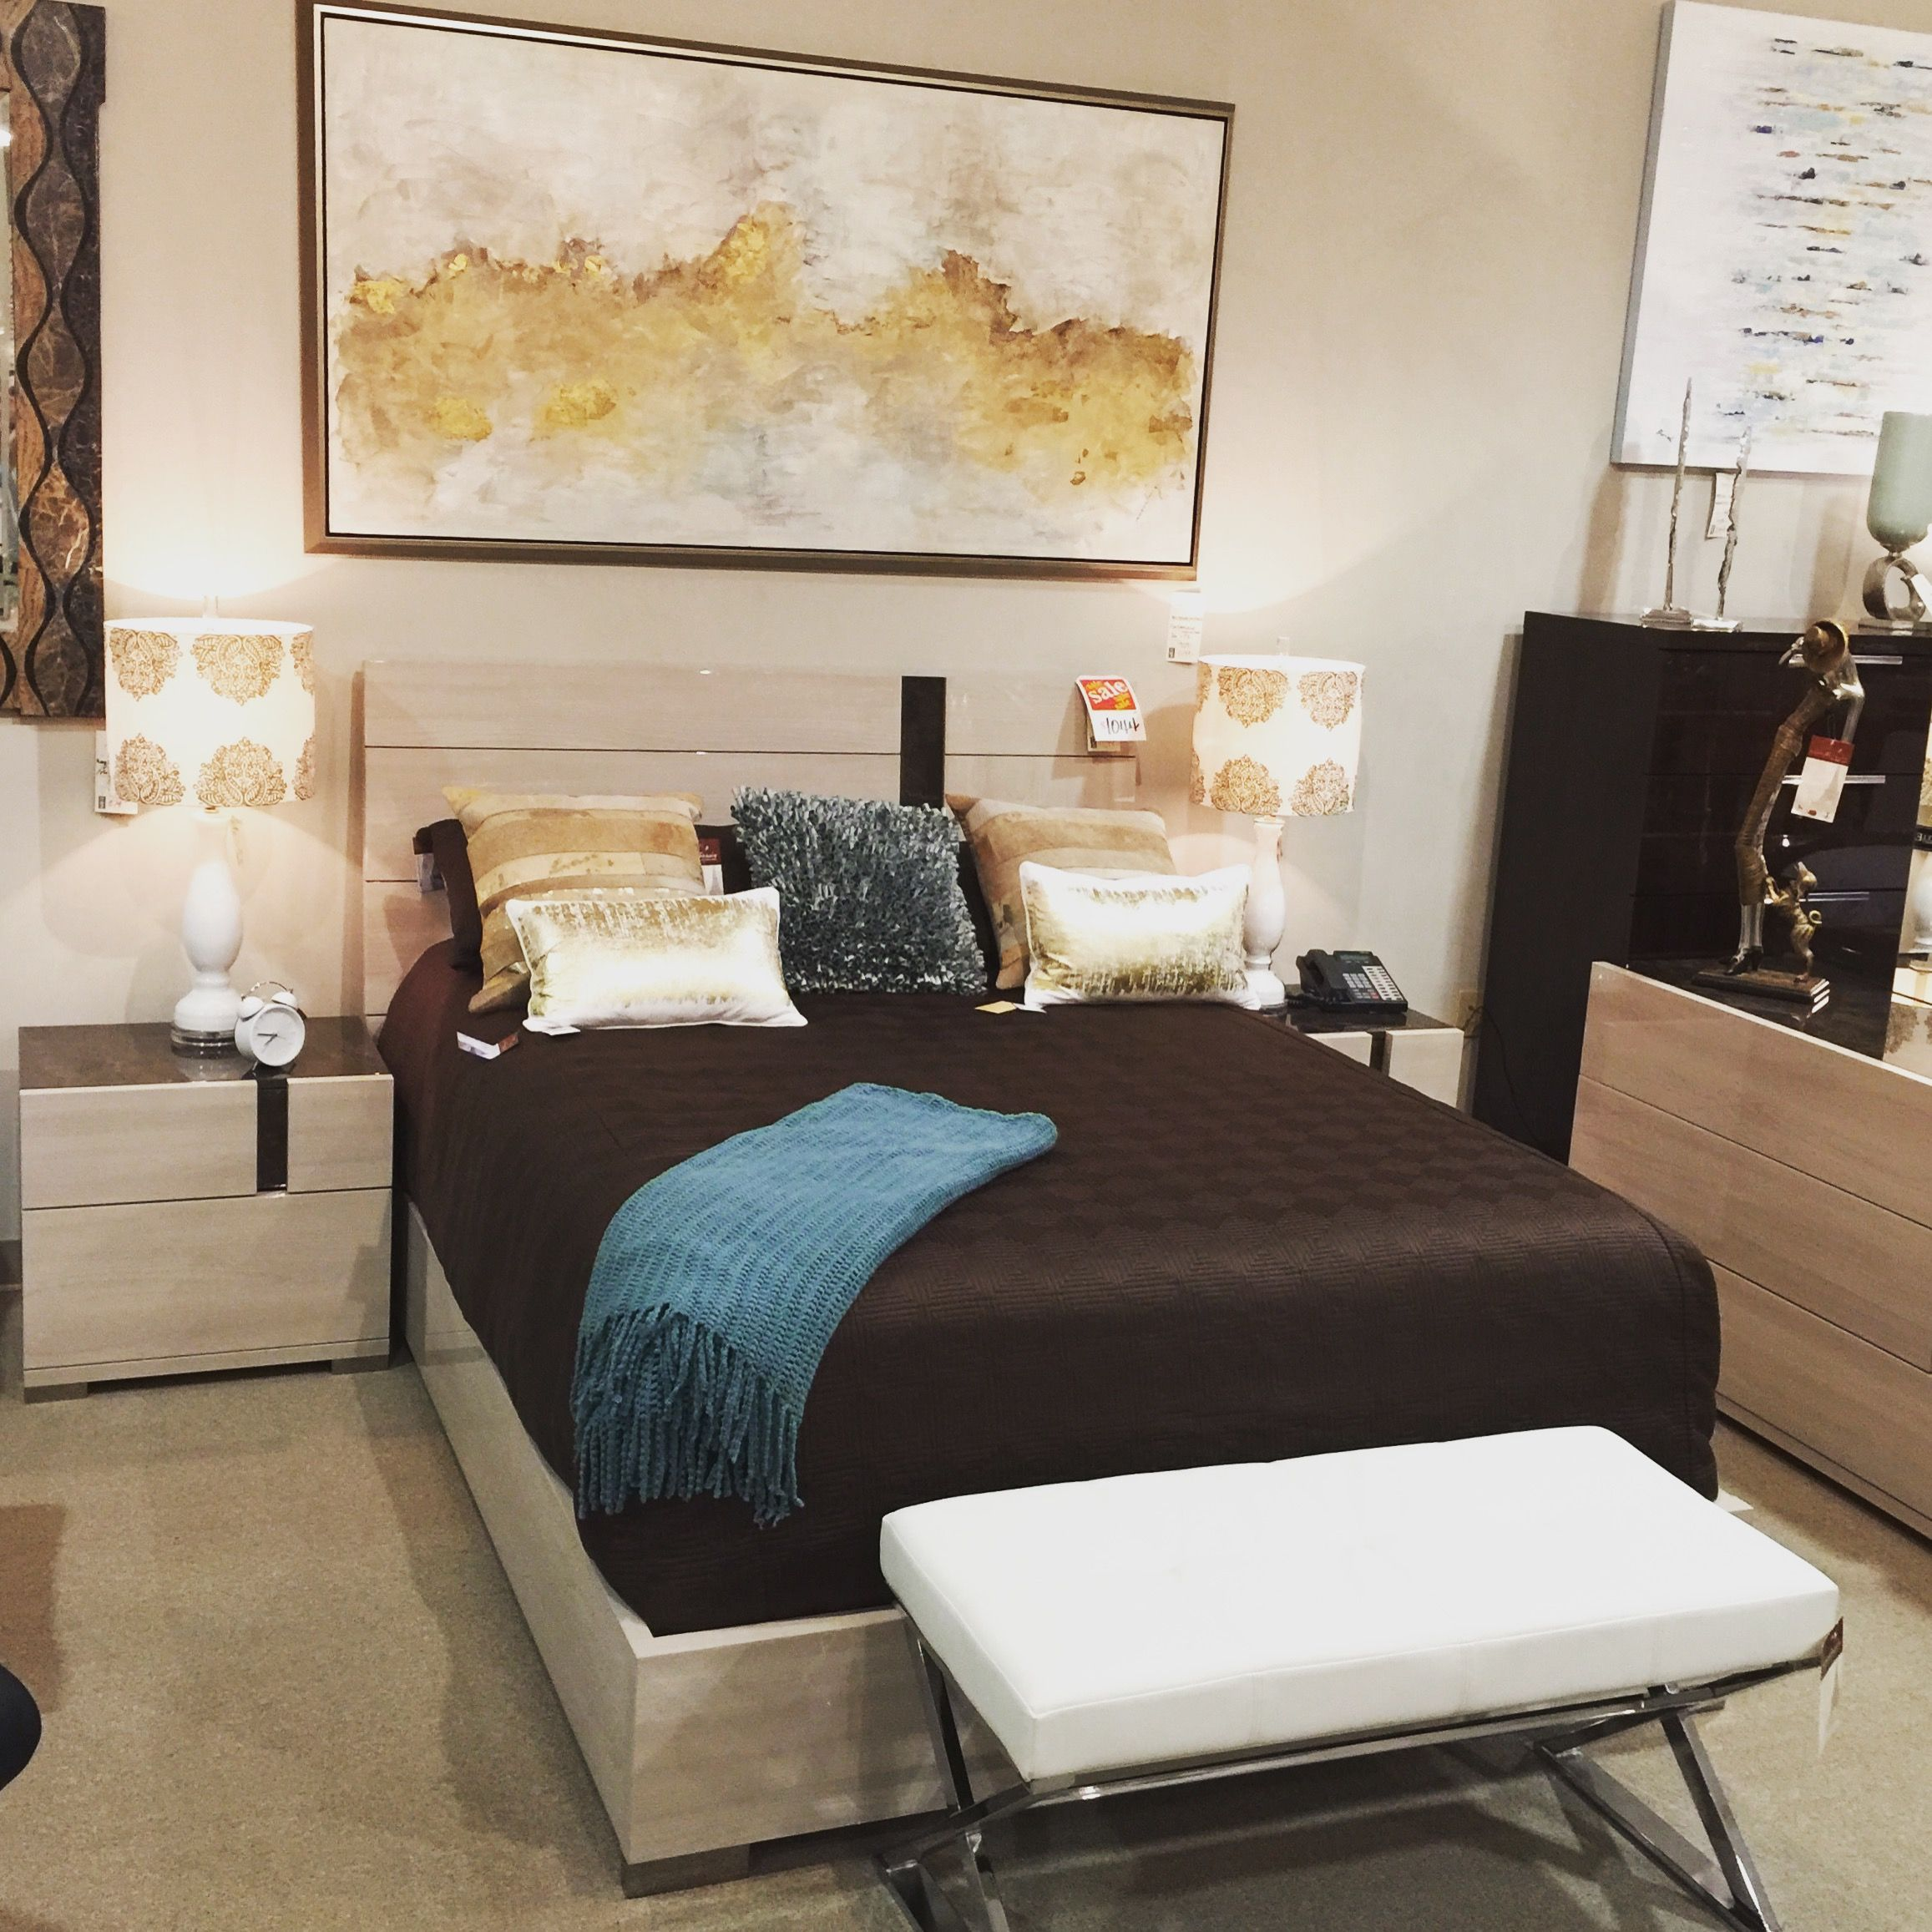 Teodora Bedroom Scandinavia Inc. Metairie New Orleans Louisiana Contemporary  Modern Furniture